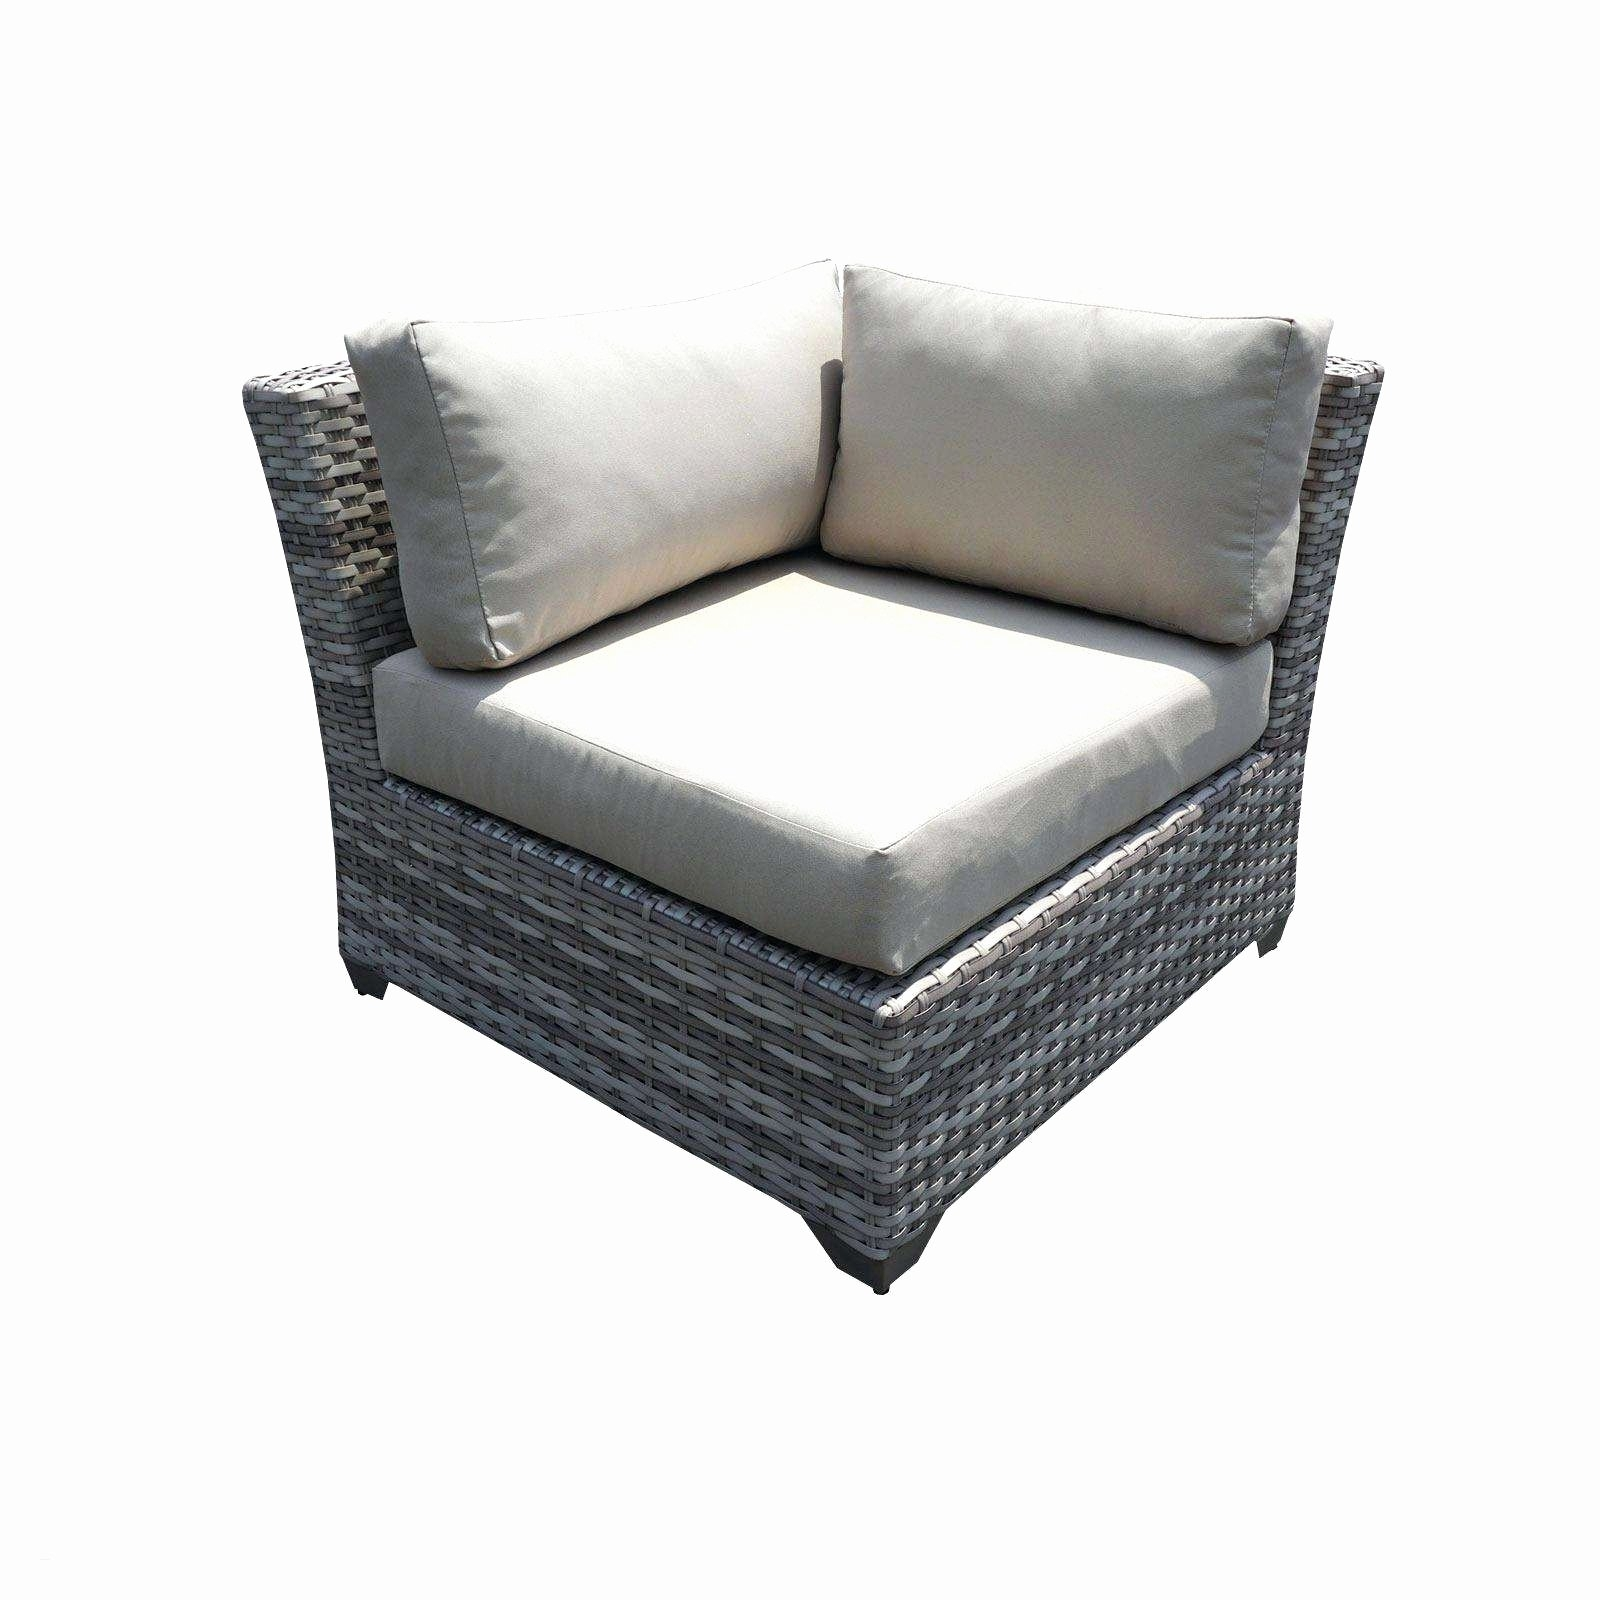 Simple 25 2 Piece Sectionals With Chaise Awesome | Russiandesignshow pertaining to Aquarius Light Grey 2 Piece Sectionals With Laf Chaise (Image 26 of 30)